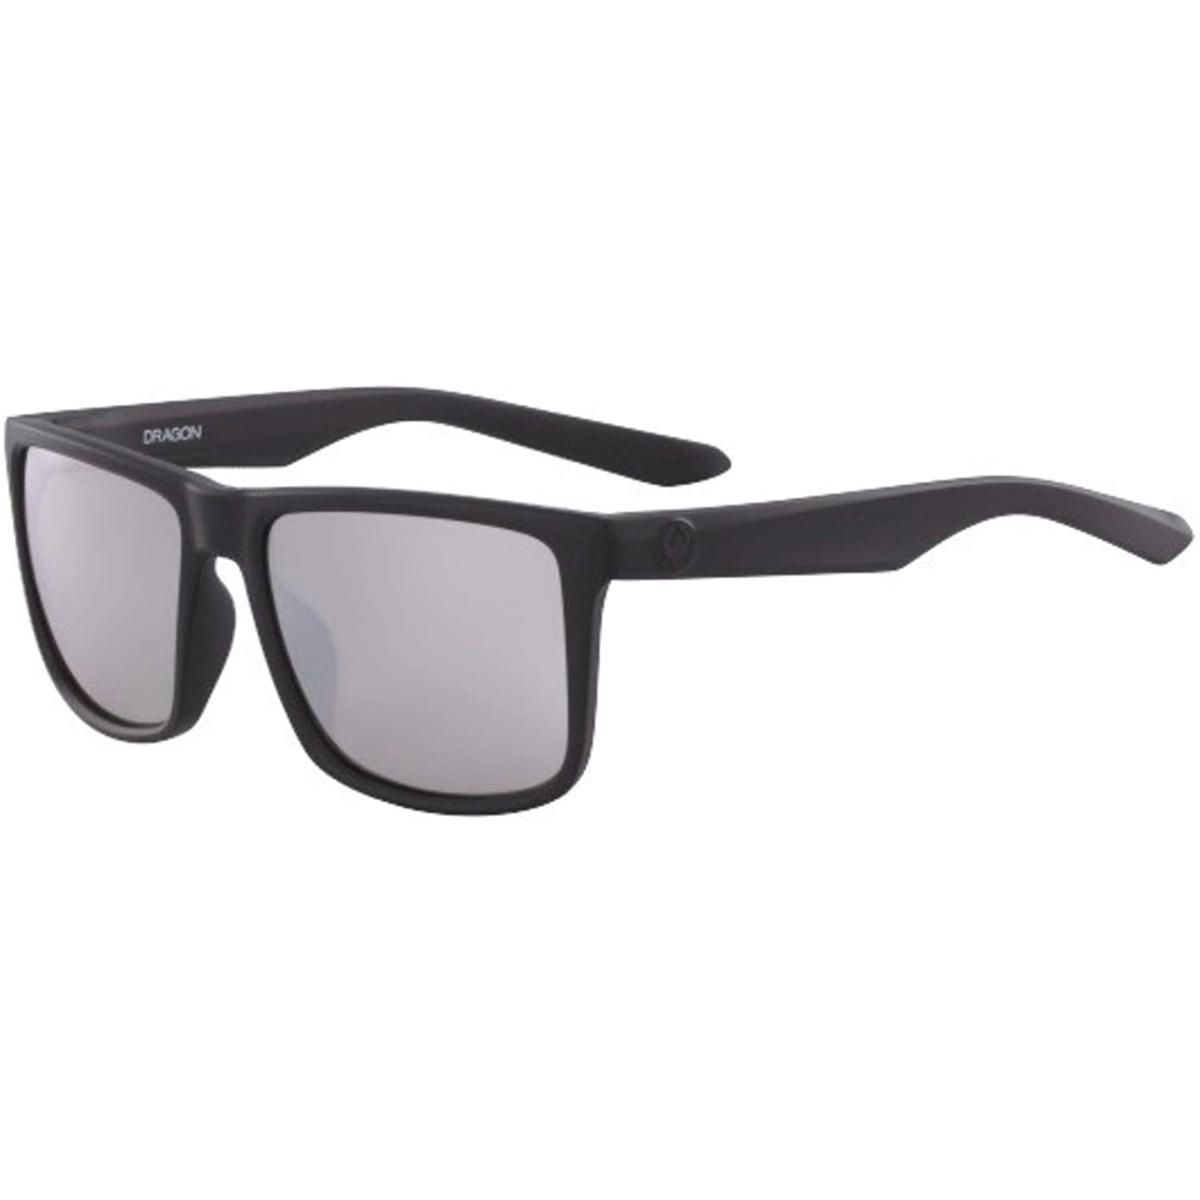 Dragon Meridien Men's Sunglasses